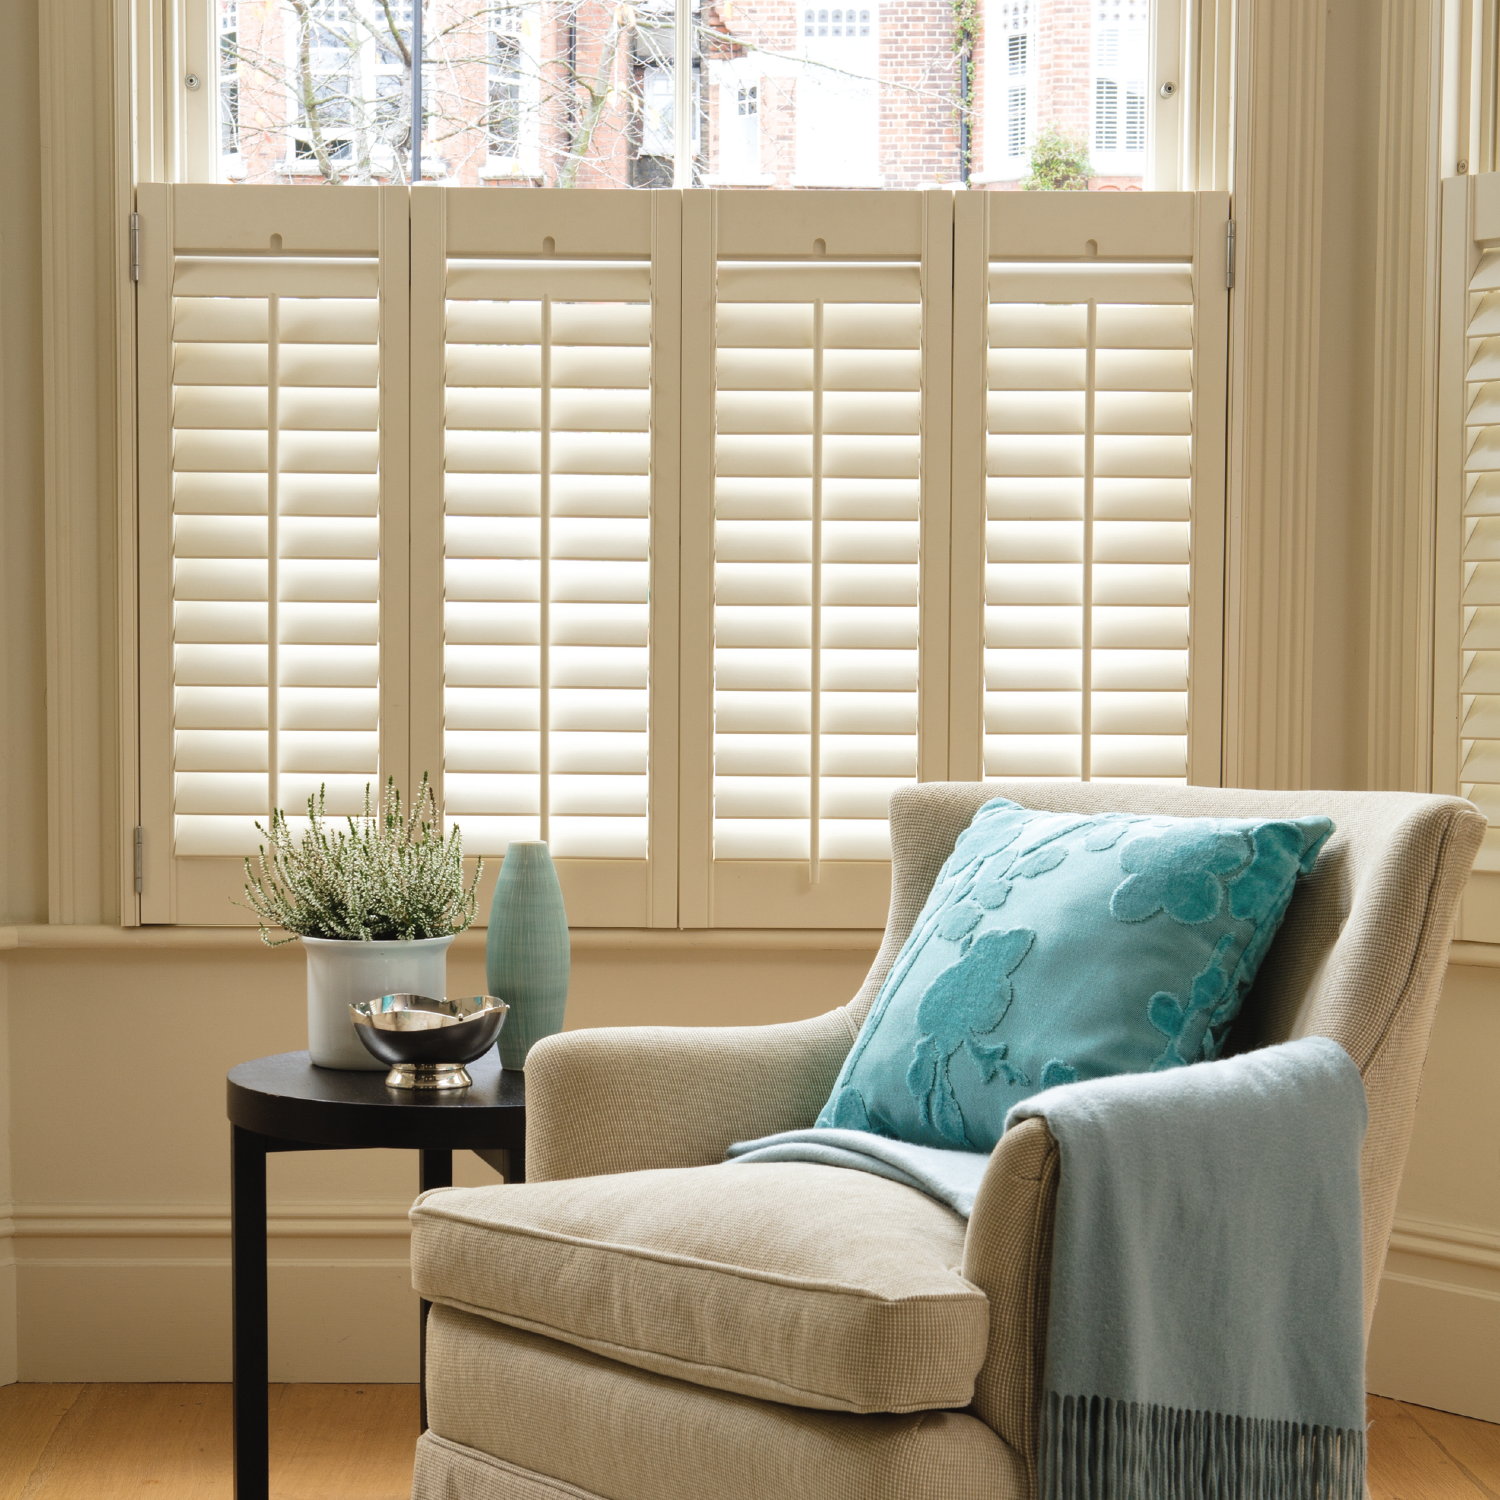 Shutters - Our stunning range of made-to-measure plantation blinds are engineered to the highest possible standards, manufactured in state-of-the art production facilities and produced from some of the finest grade raw materials.From our fantastic entry level MDF solution to our range topping FSC® C112896 certified white teak that come from a sustainable plantation with a traceable full custody chain, We are dedicated to supplying only the very highest quality plantation shutters that are built to last and bring you many years of enjoyment.